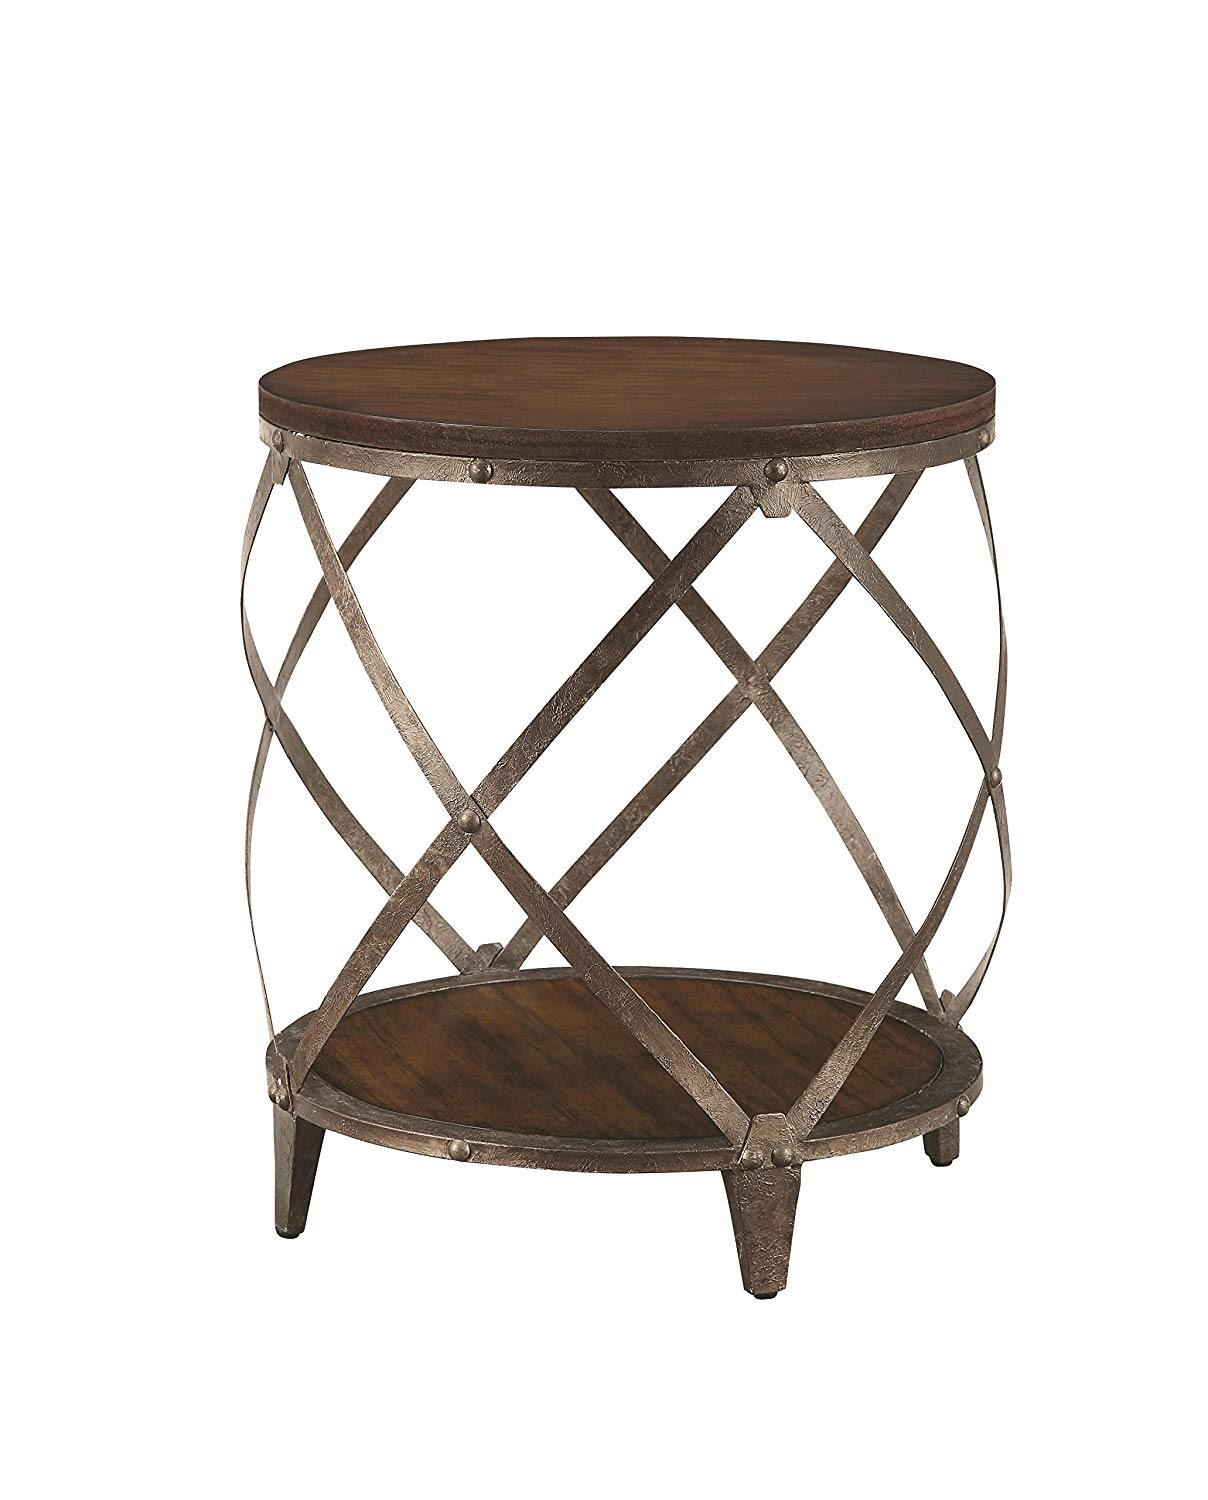 coaster home furnishings casual accent table oak and round end cabinet red brown kitchen dining steamer small decor ethan allen court nightstand inch height large dark wood coffee